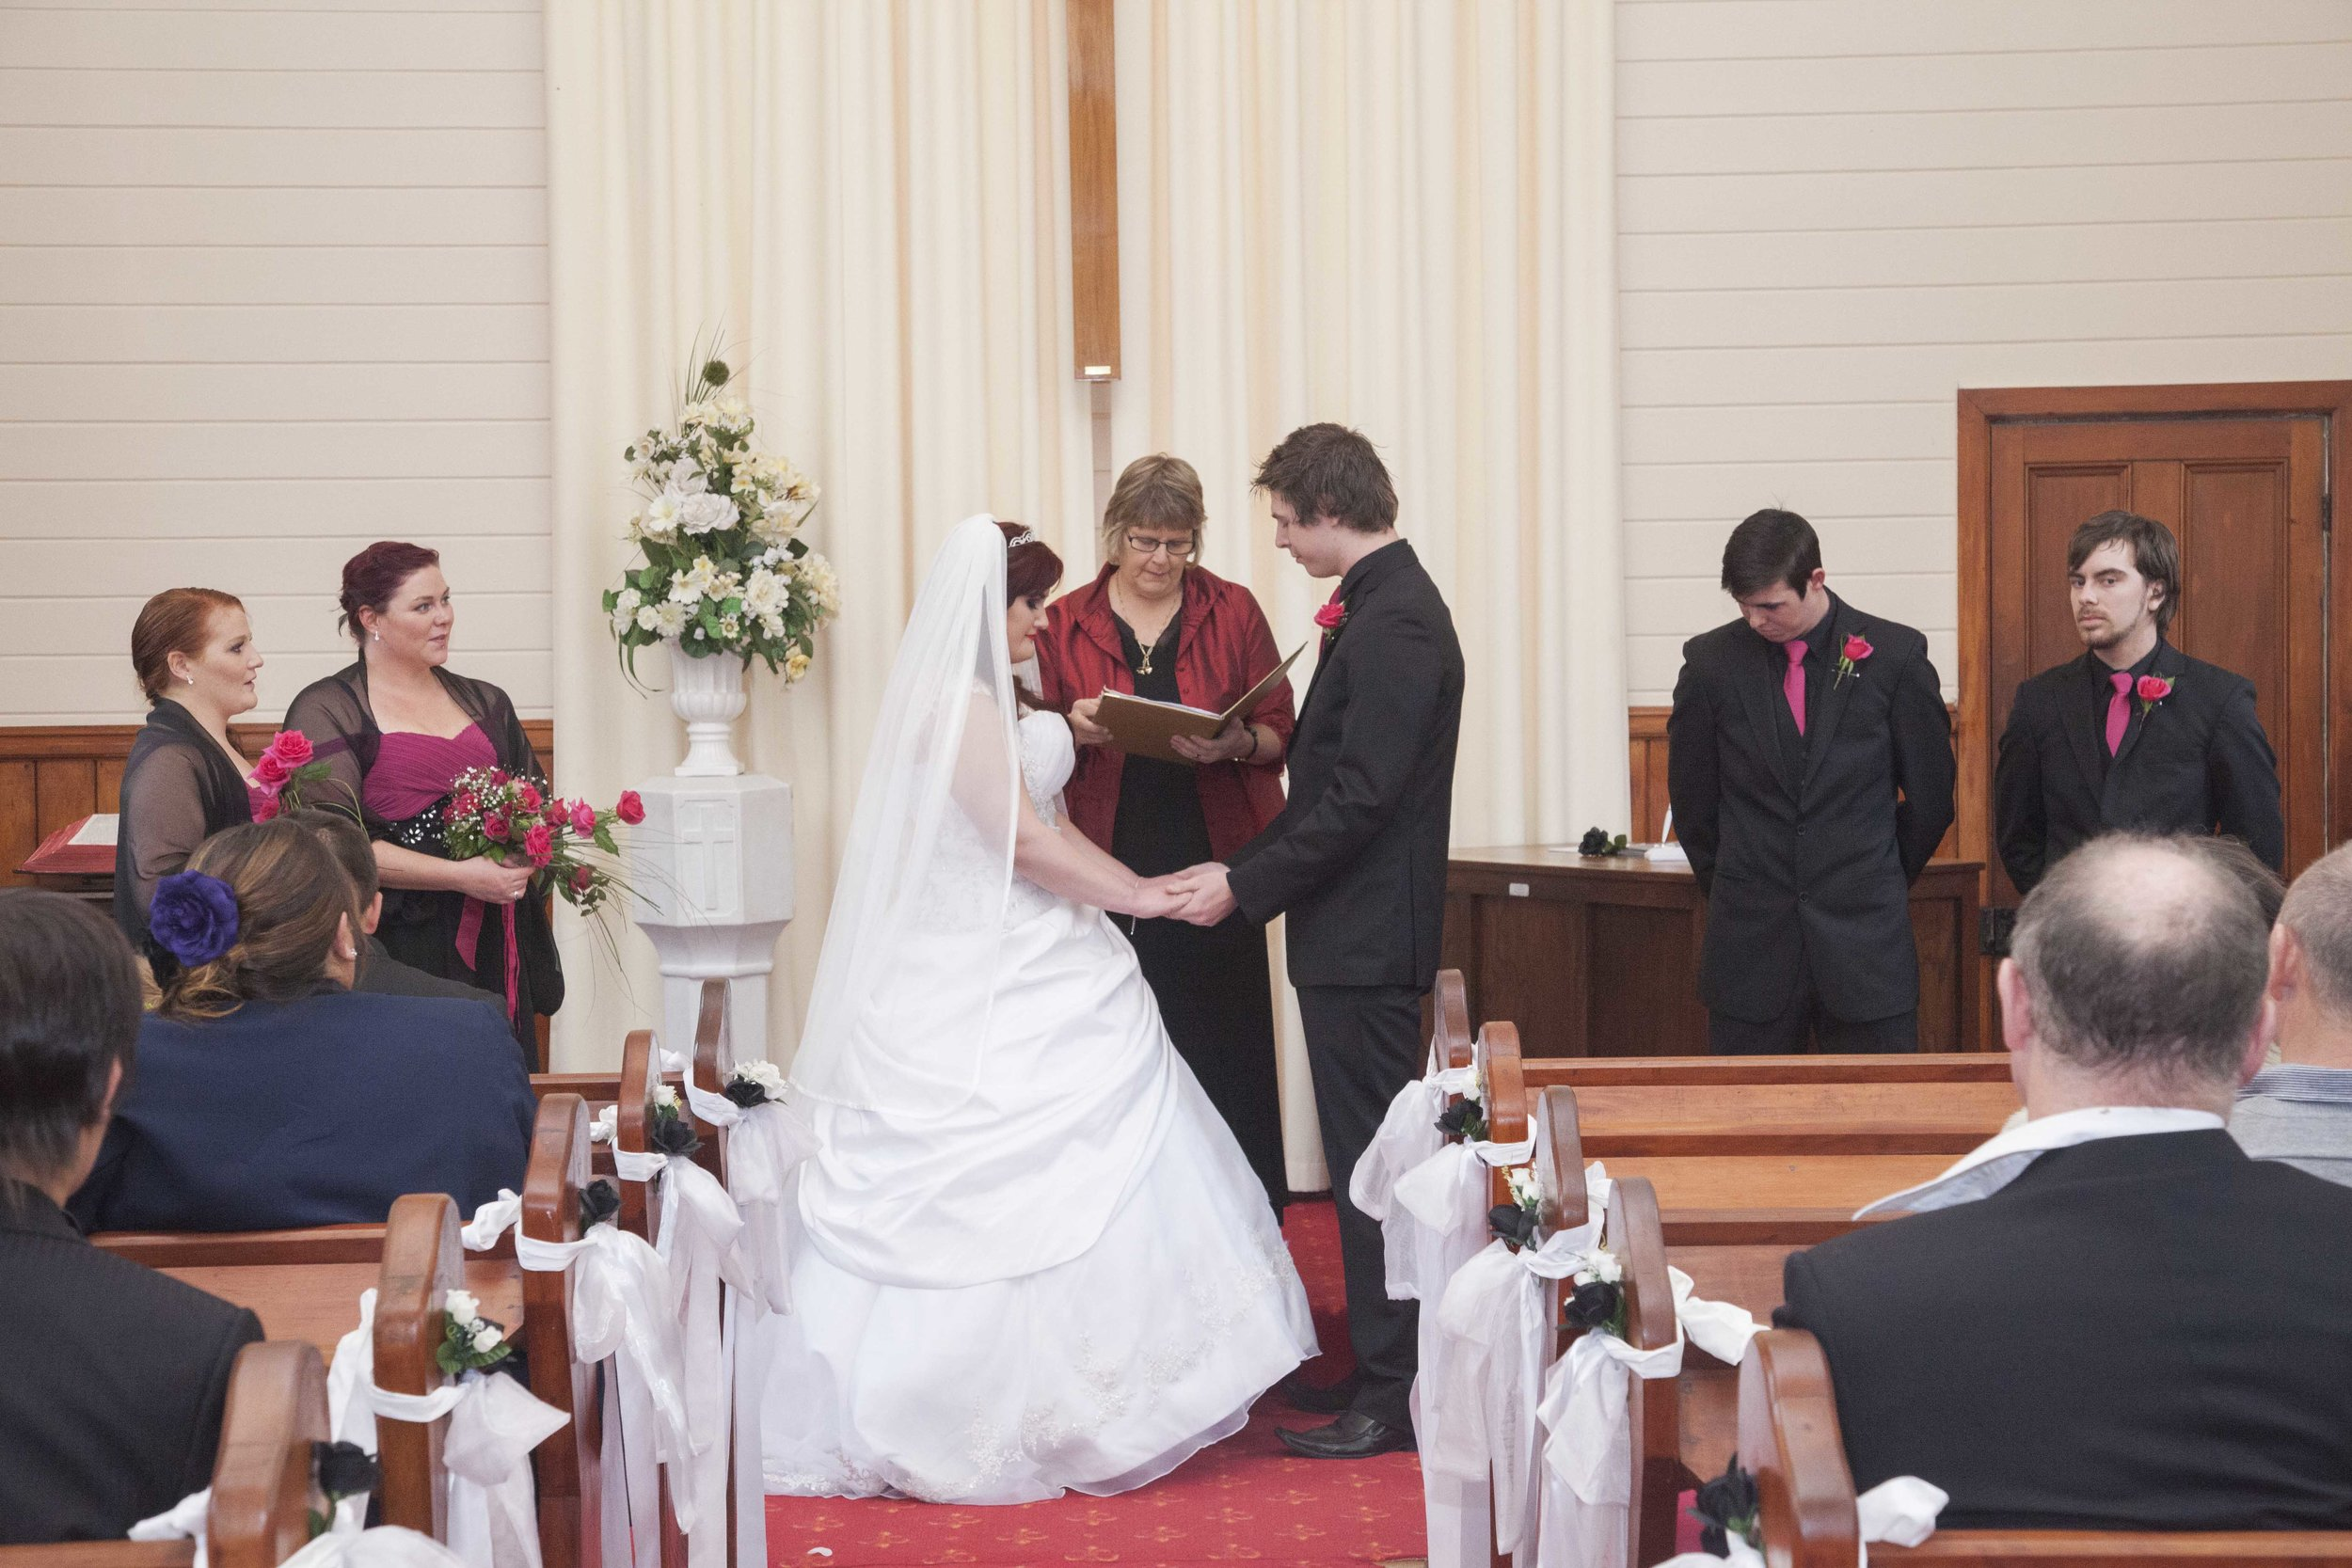 PalmerstonNorthWeddings4.jpg